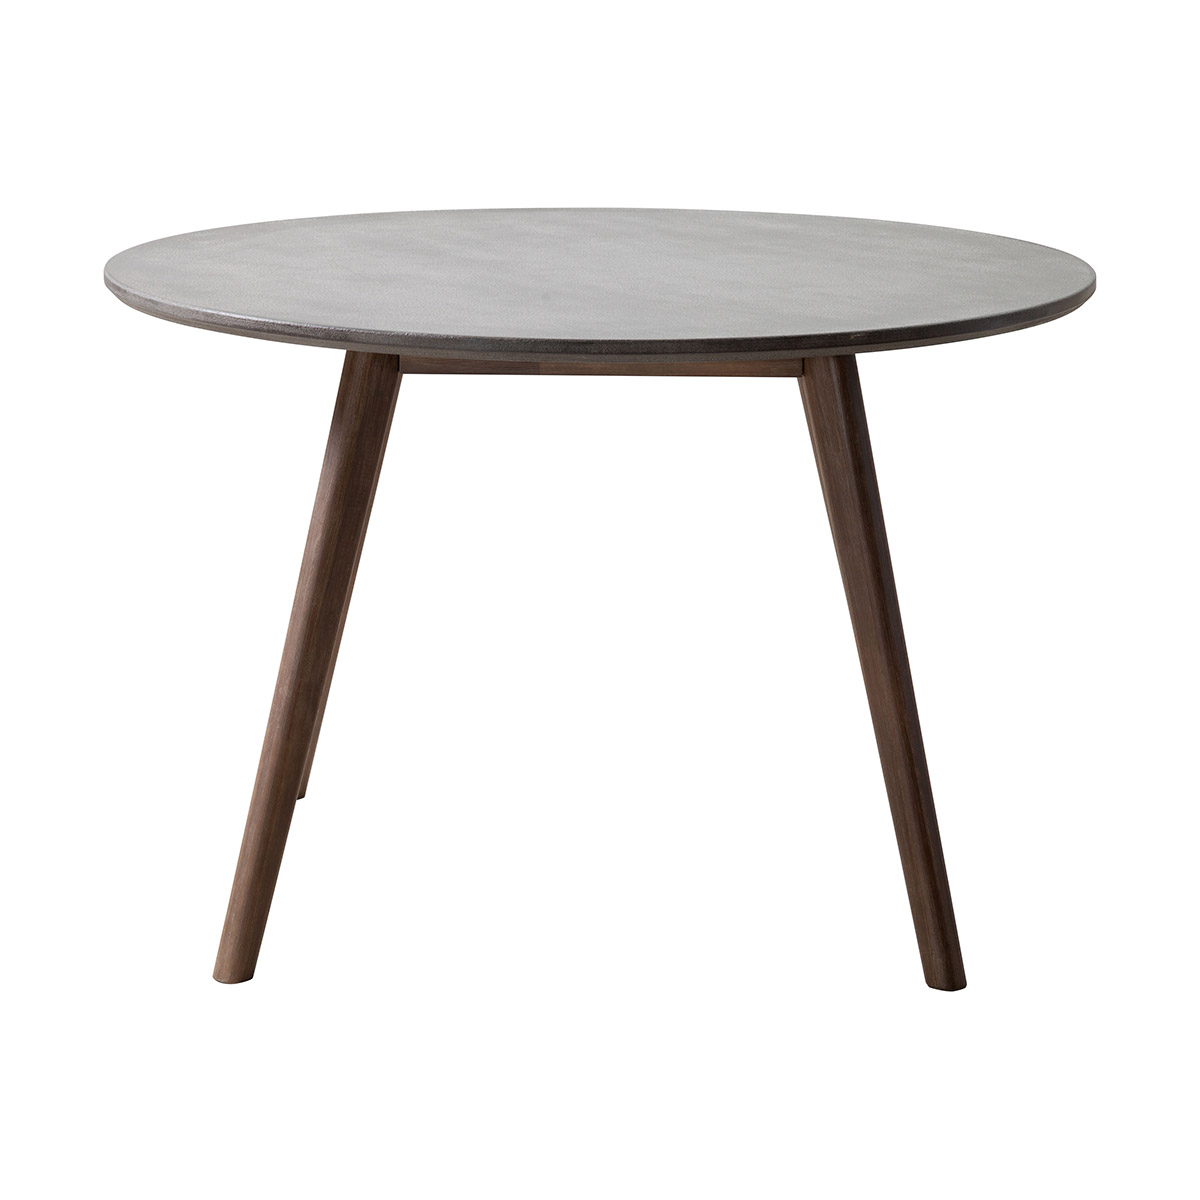 Zuo Elite Patio Dining Table in Cement & Natural